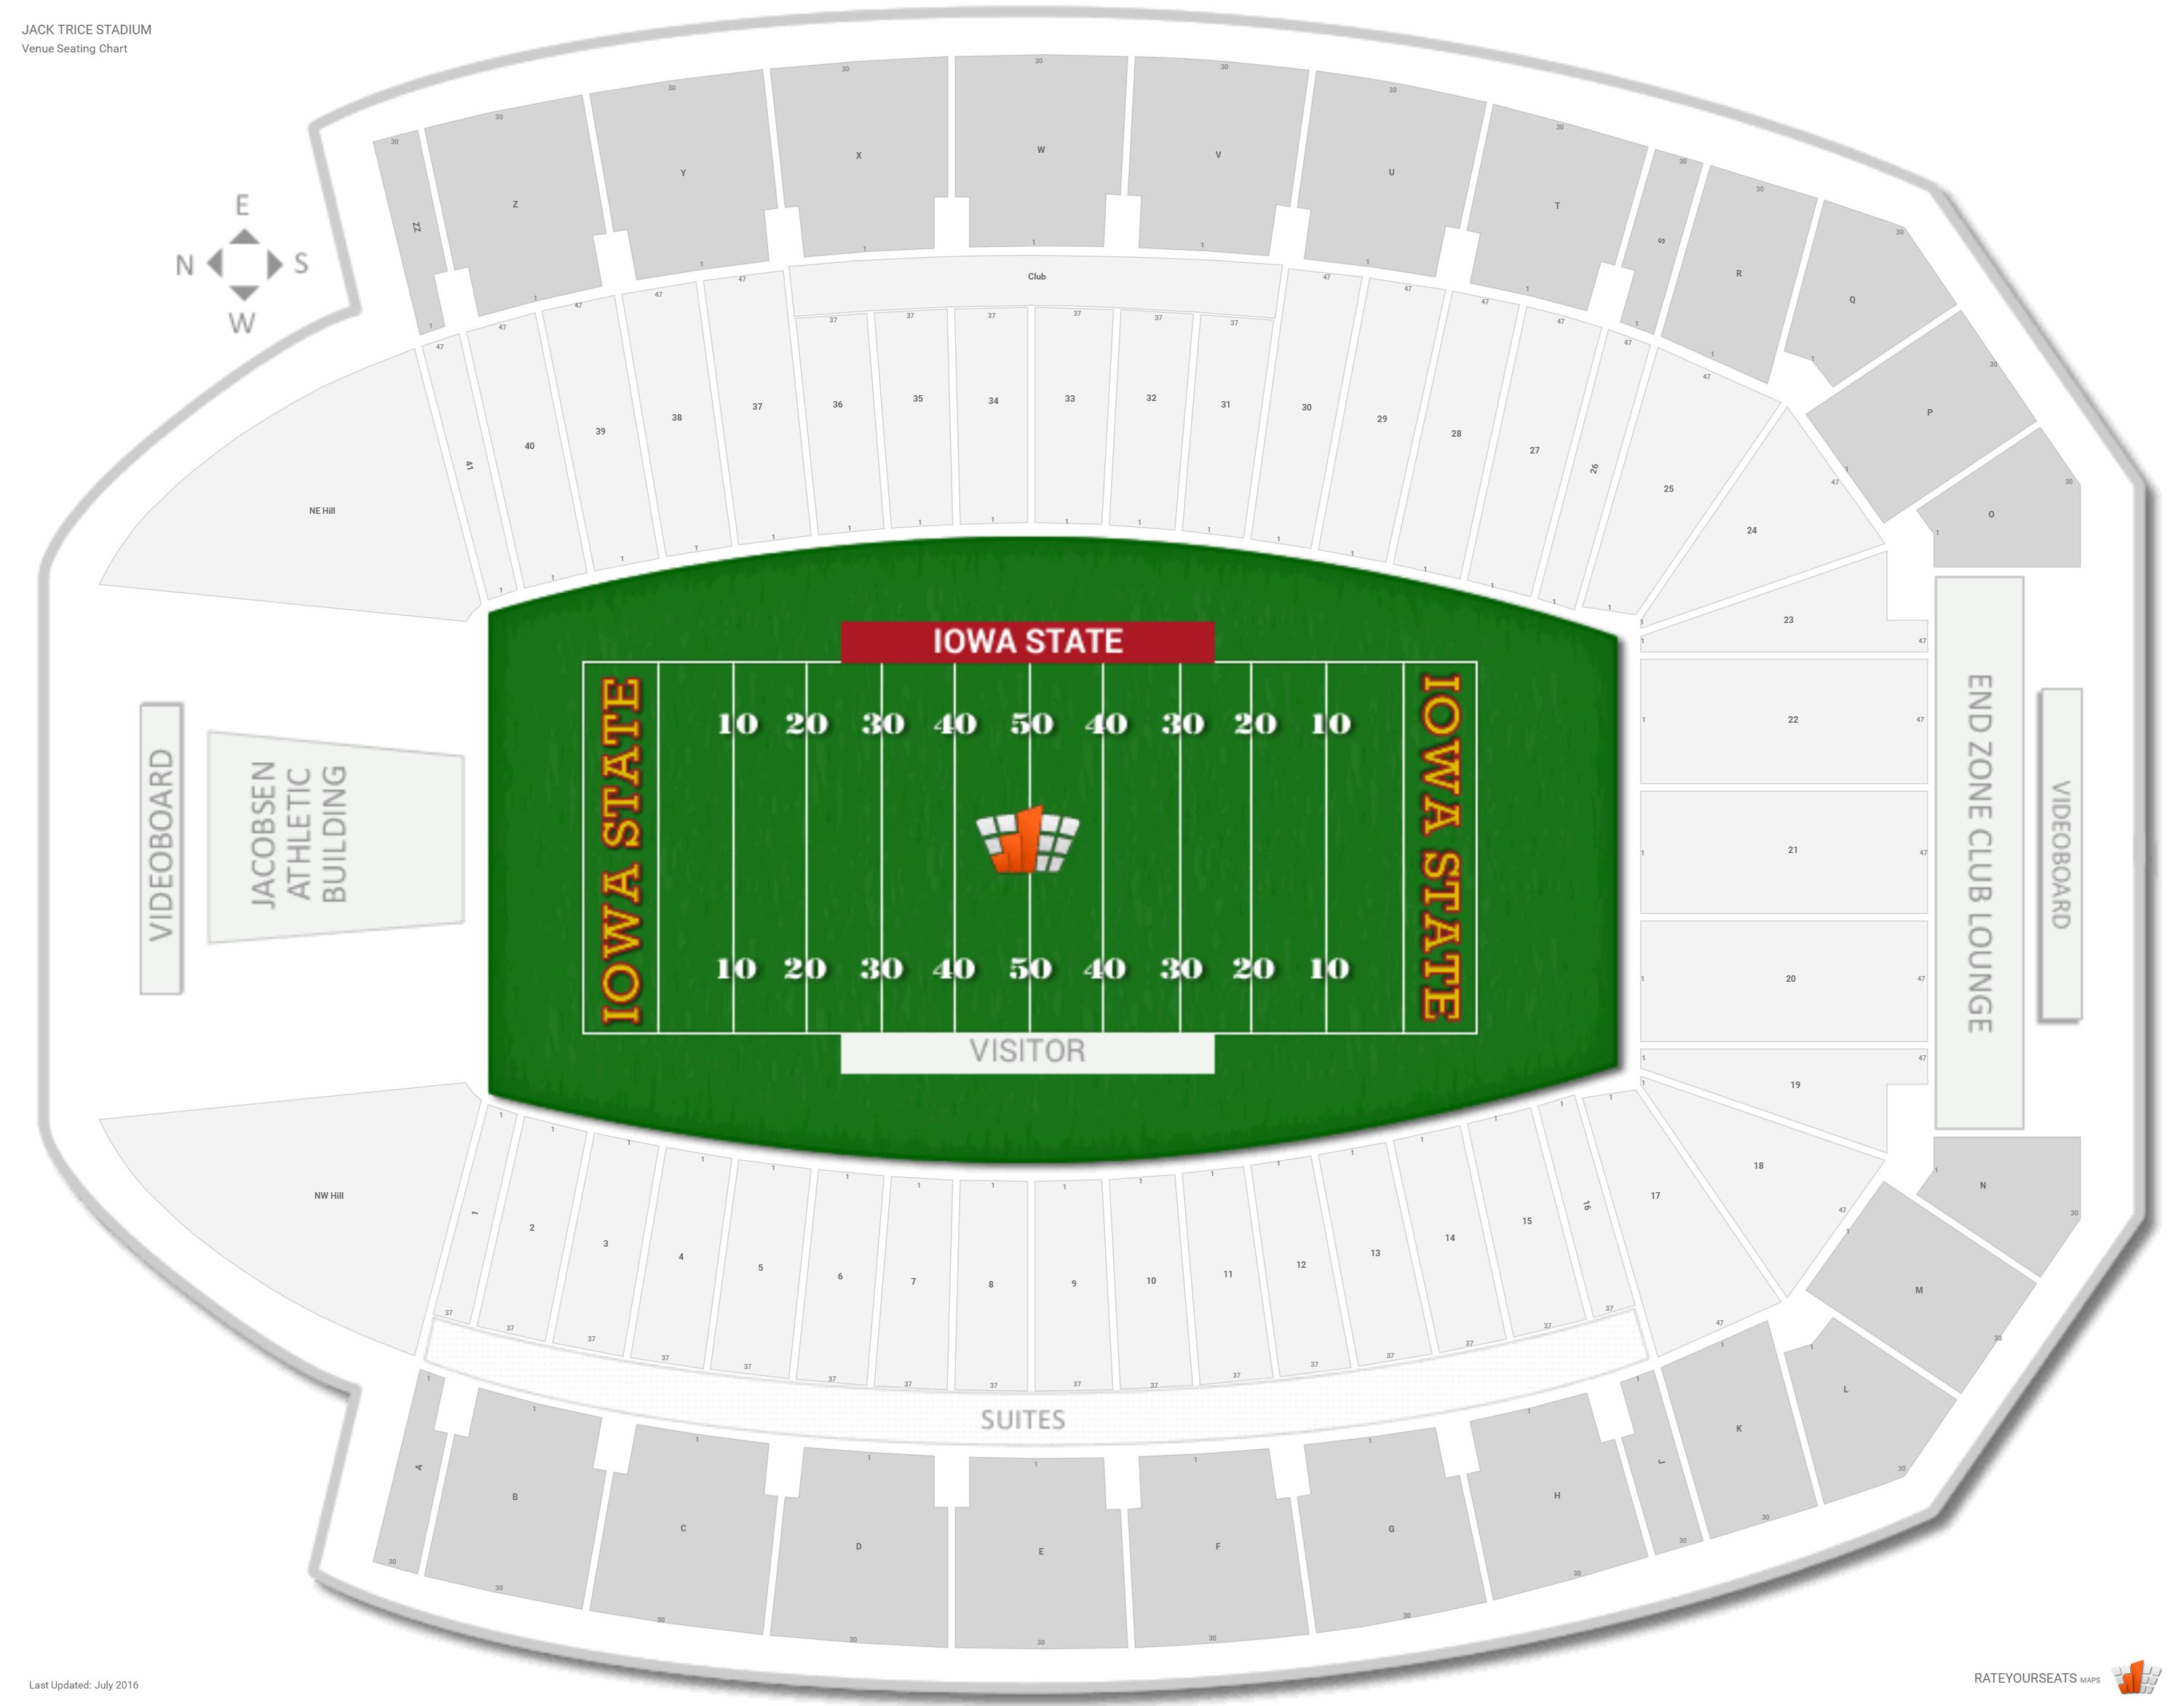 Jack trice stadium seating chart carnaval jmsmusic co